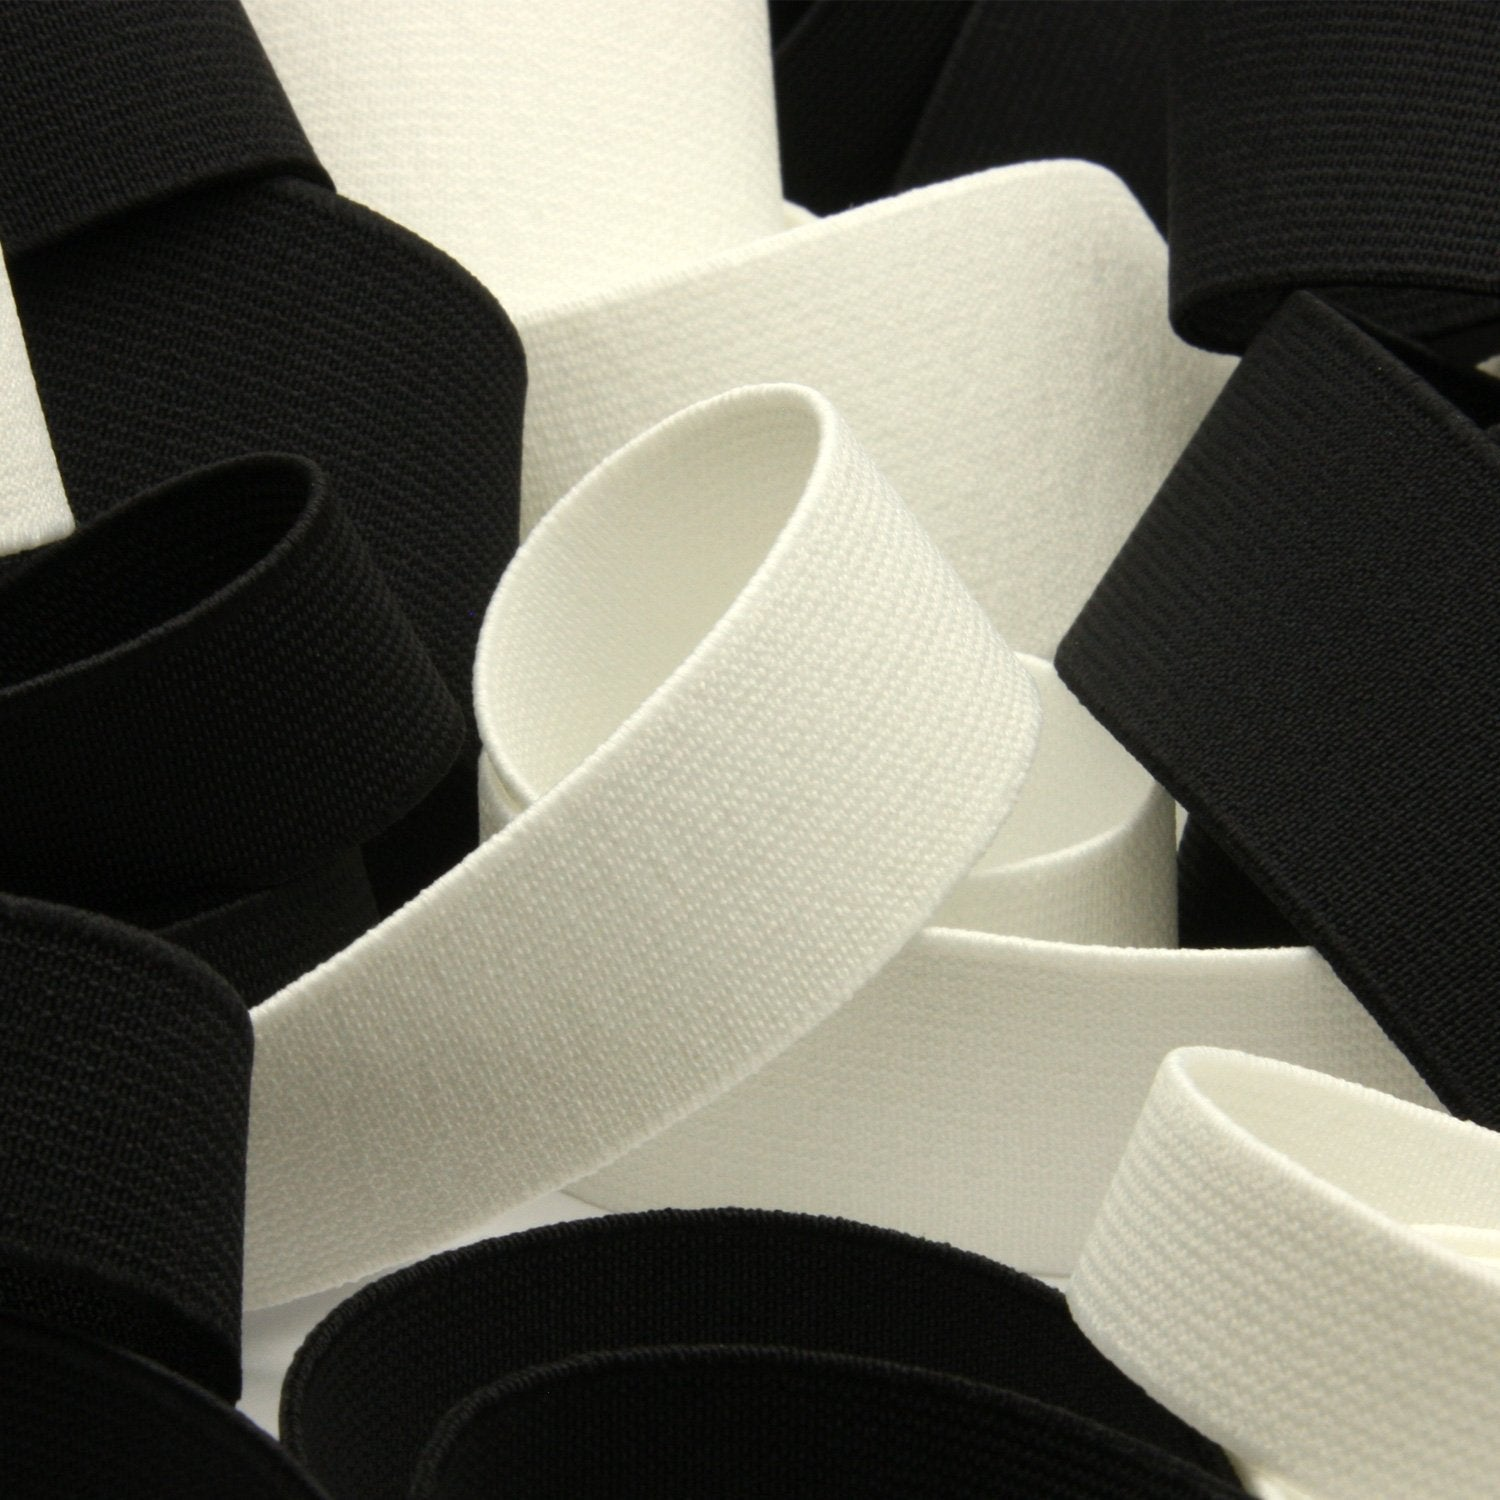 FUJIYAMA RIBBON Hard Type Inside Belt 40mm 9.14 Meters Roll Off White